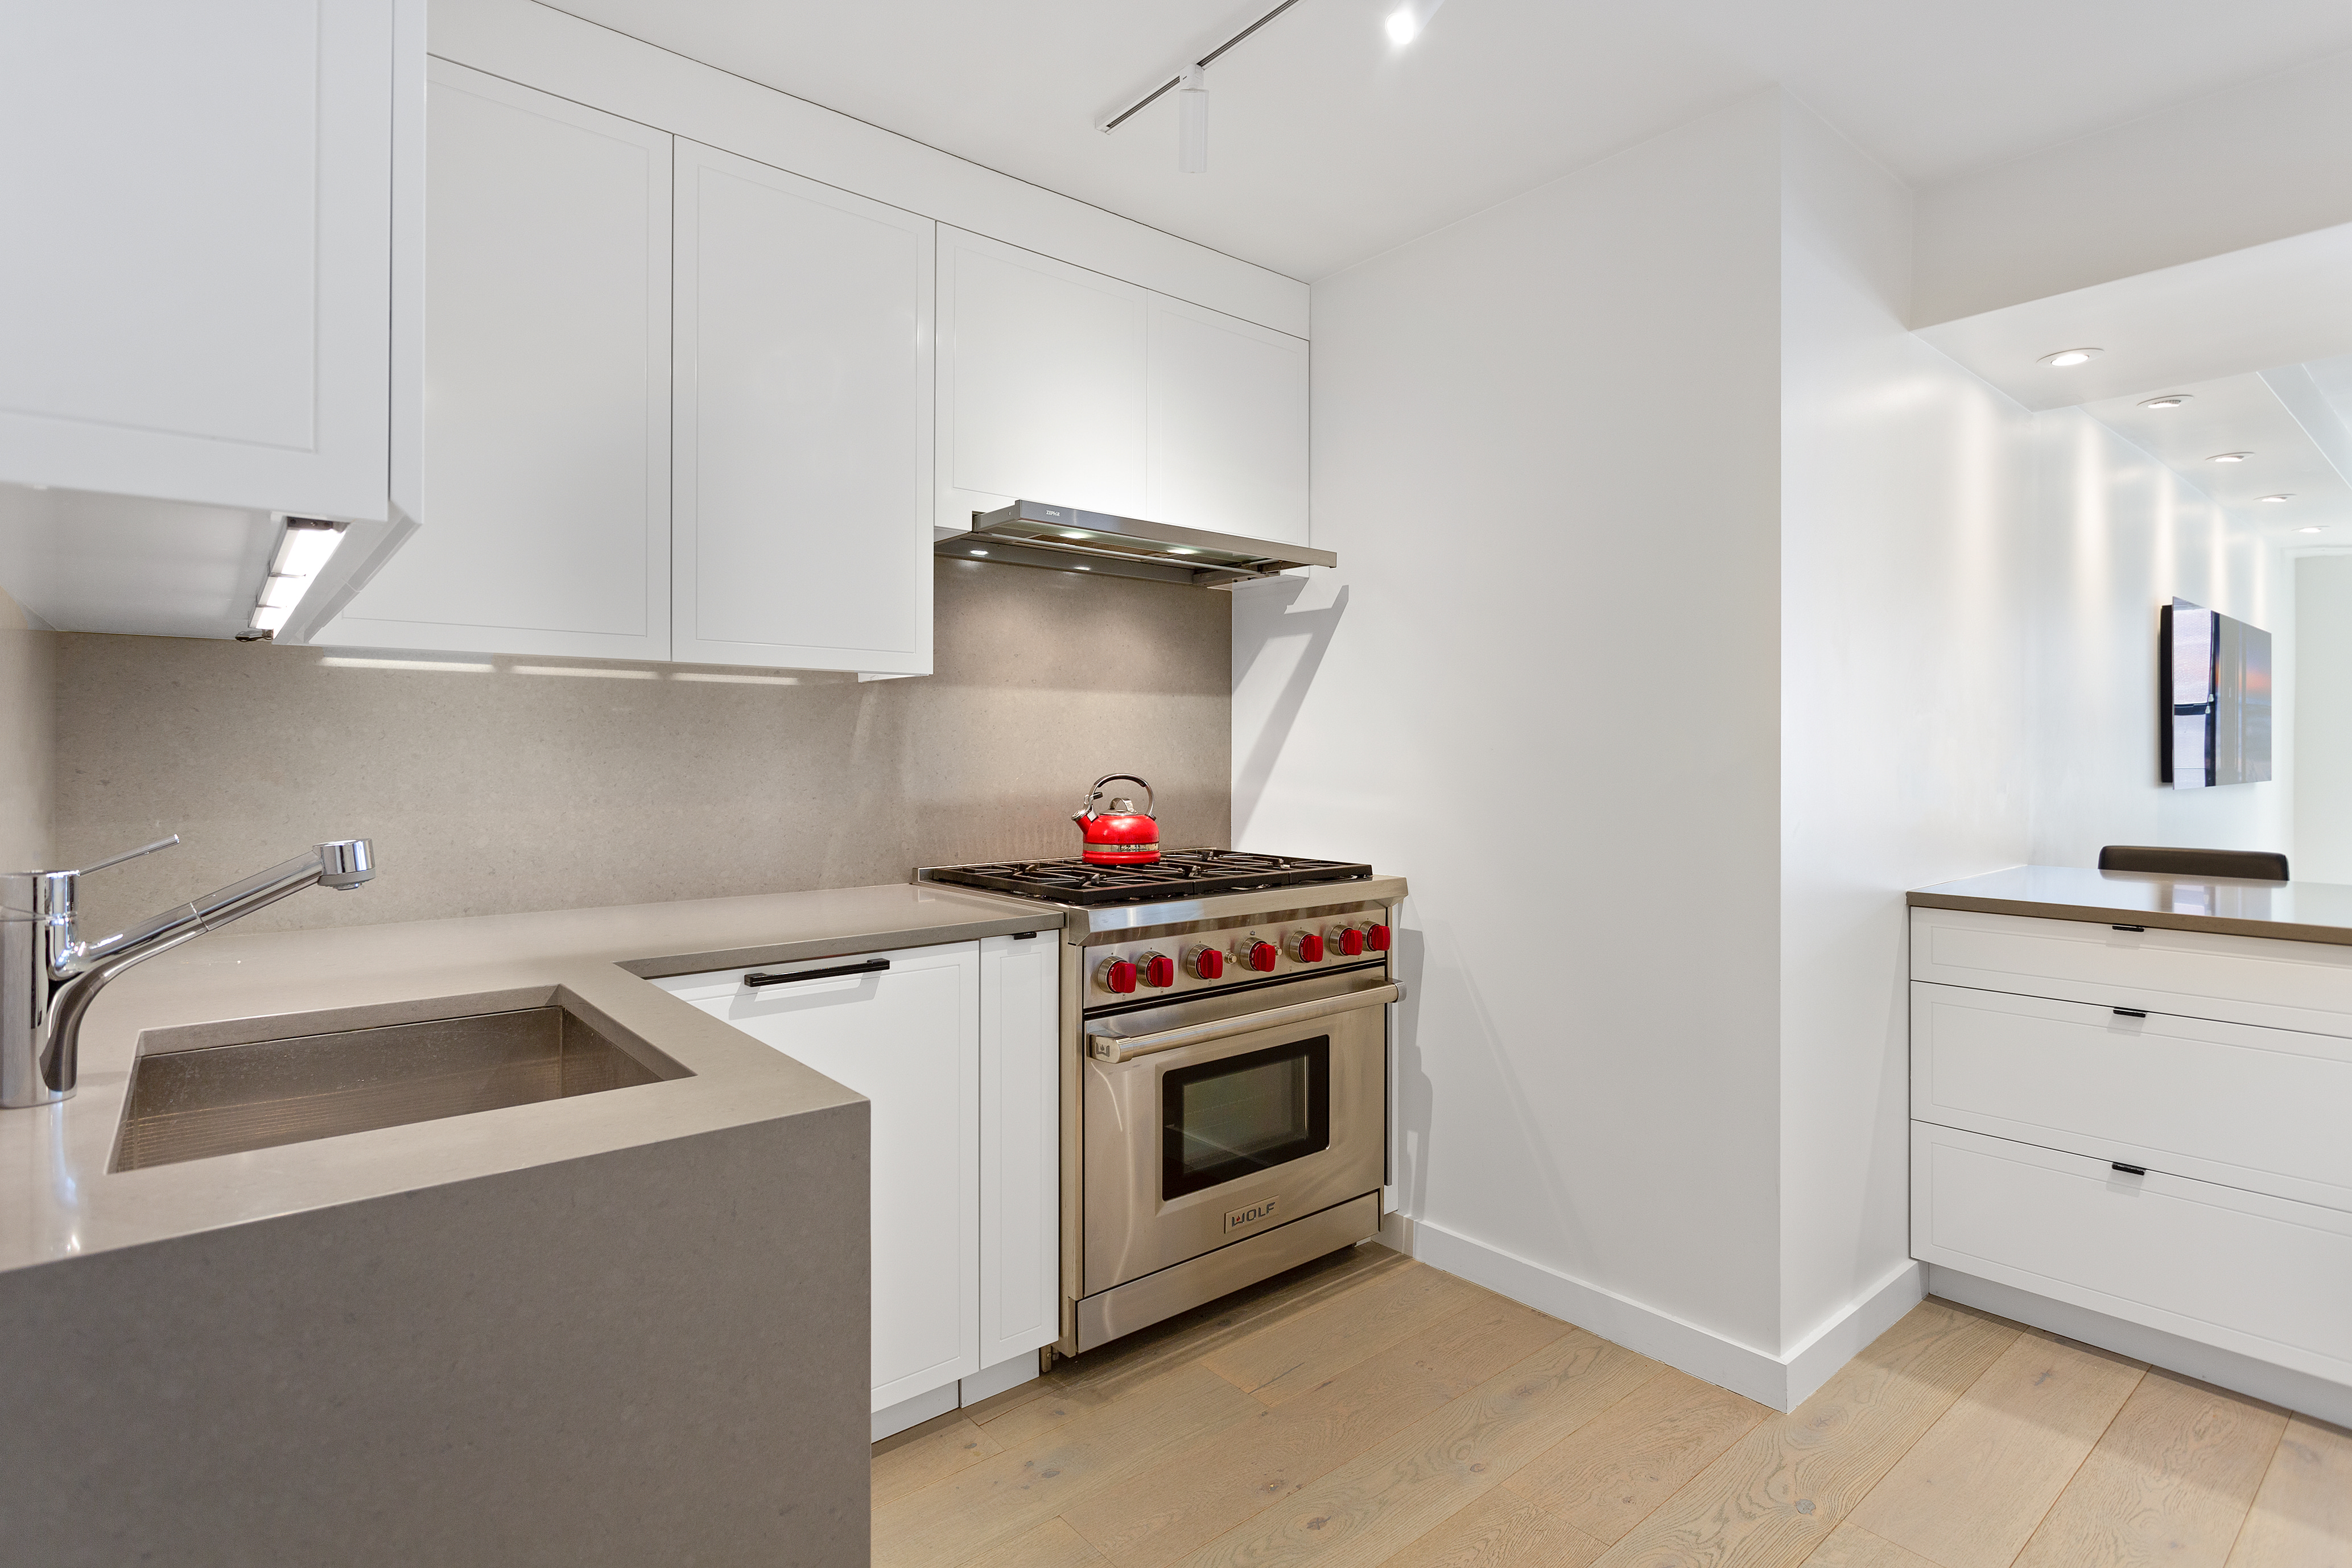 primary photo for 200 East 27th Street 8-BC, New York, NY 10016, US